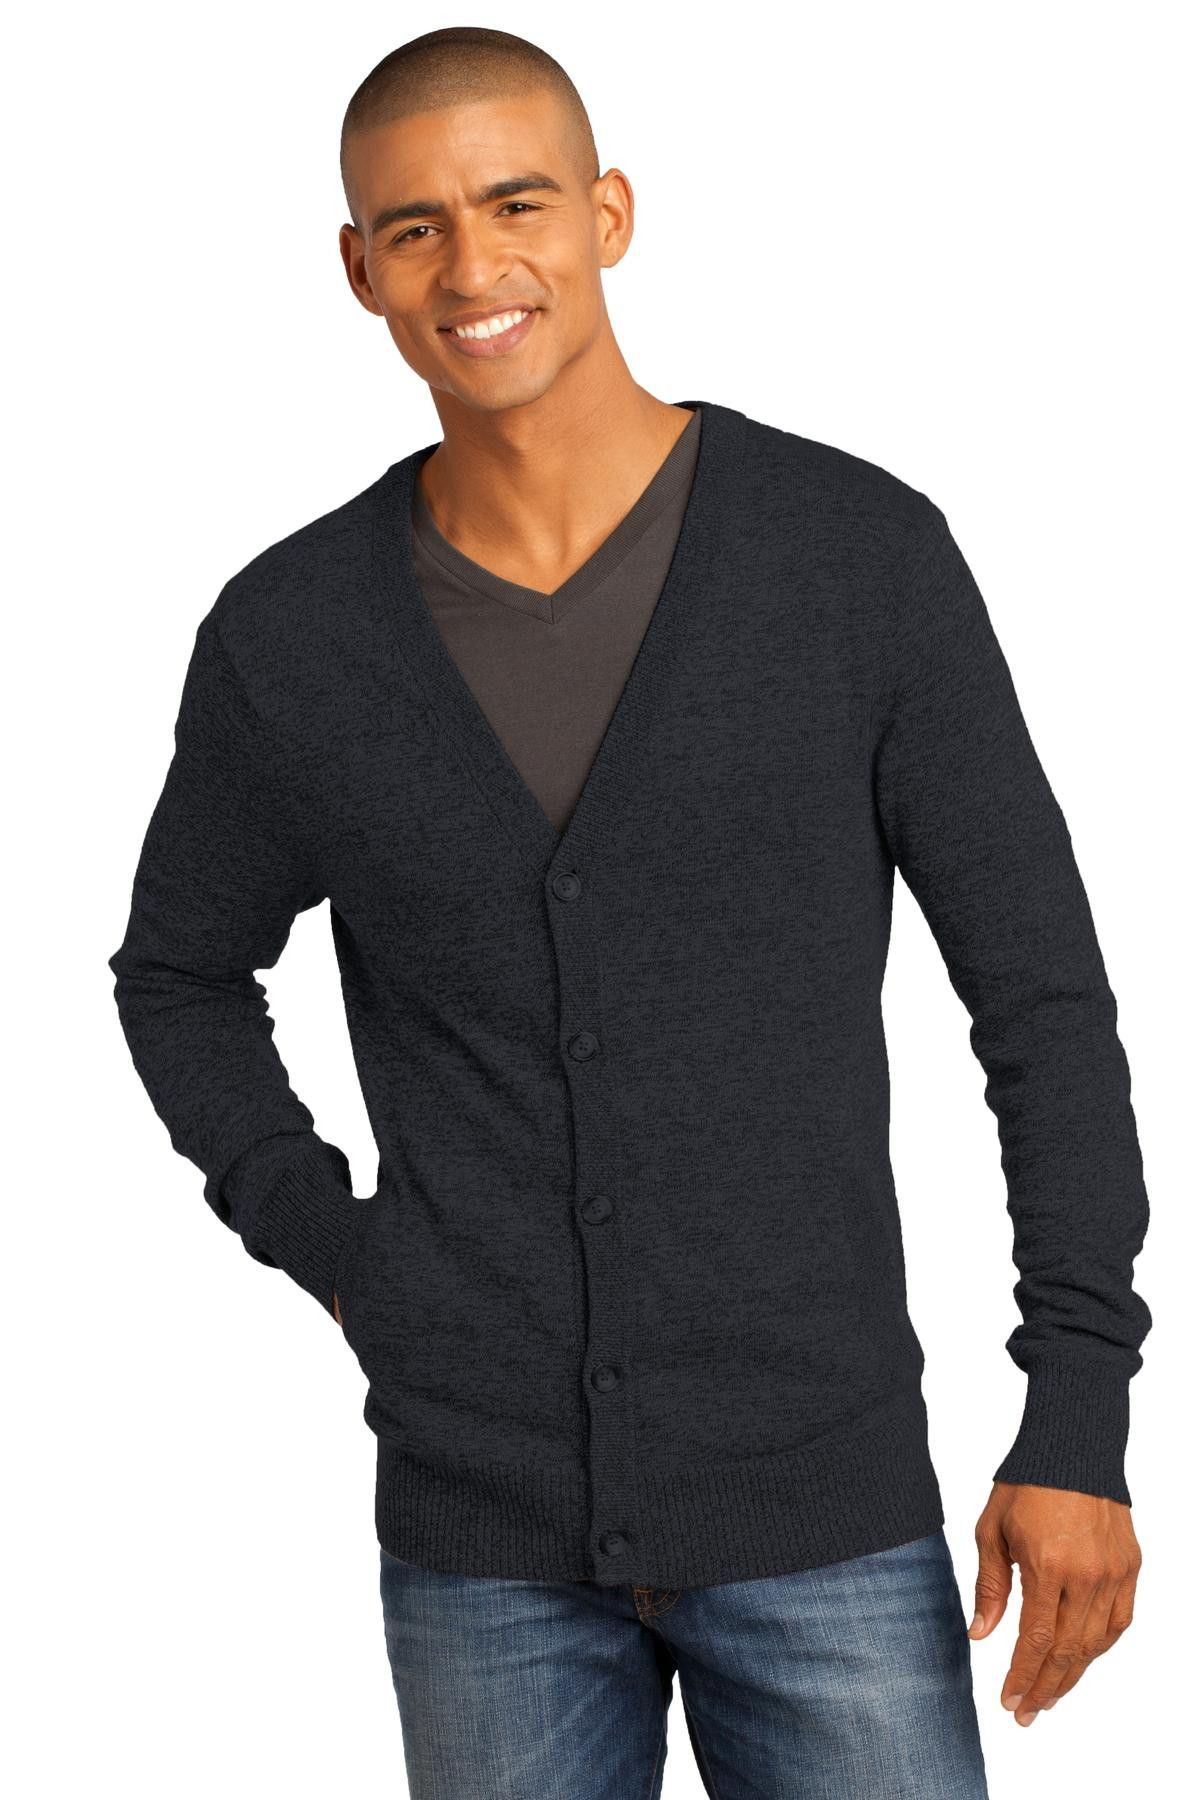 Button up your look with our updated cardigan in two-toned color ...